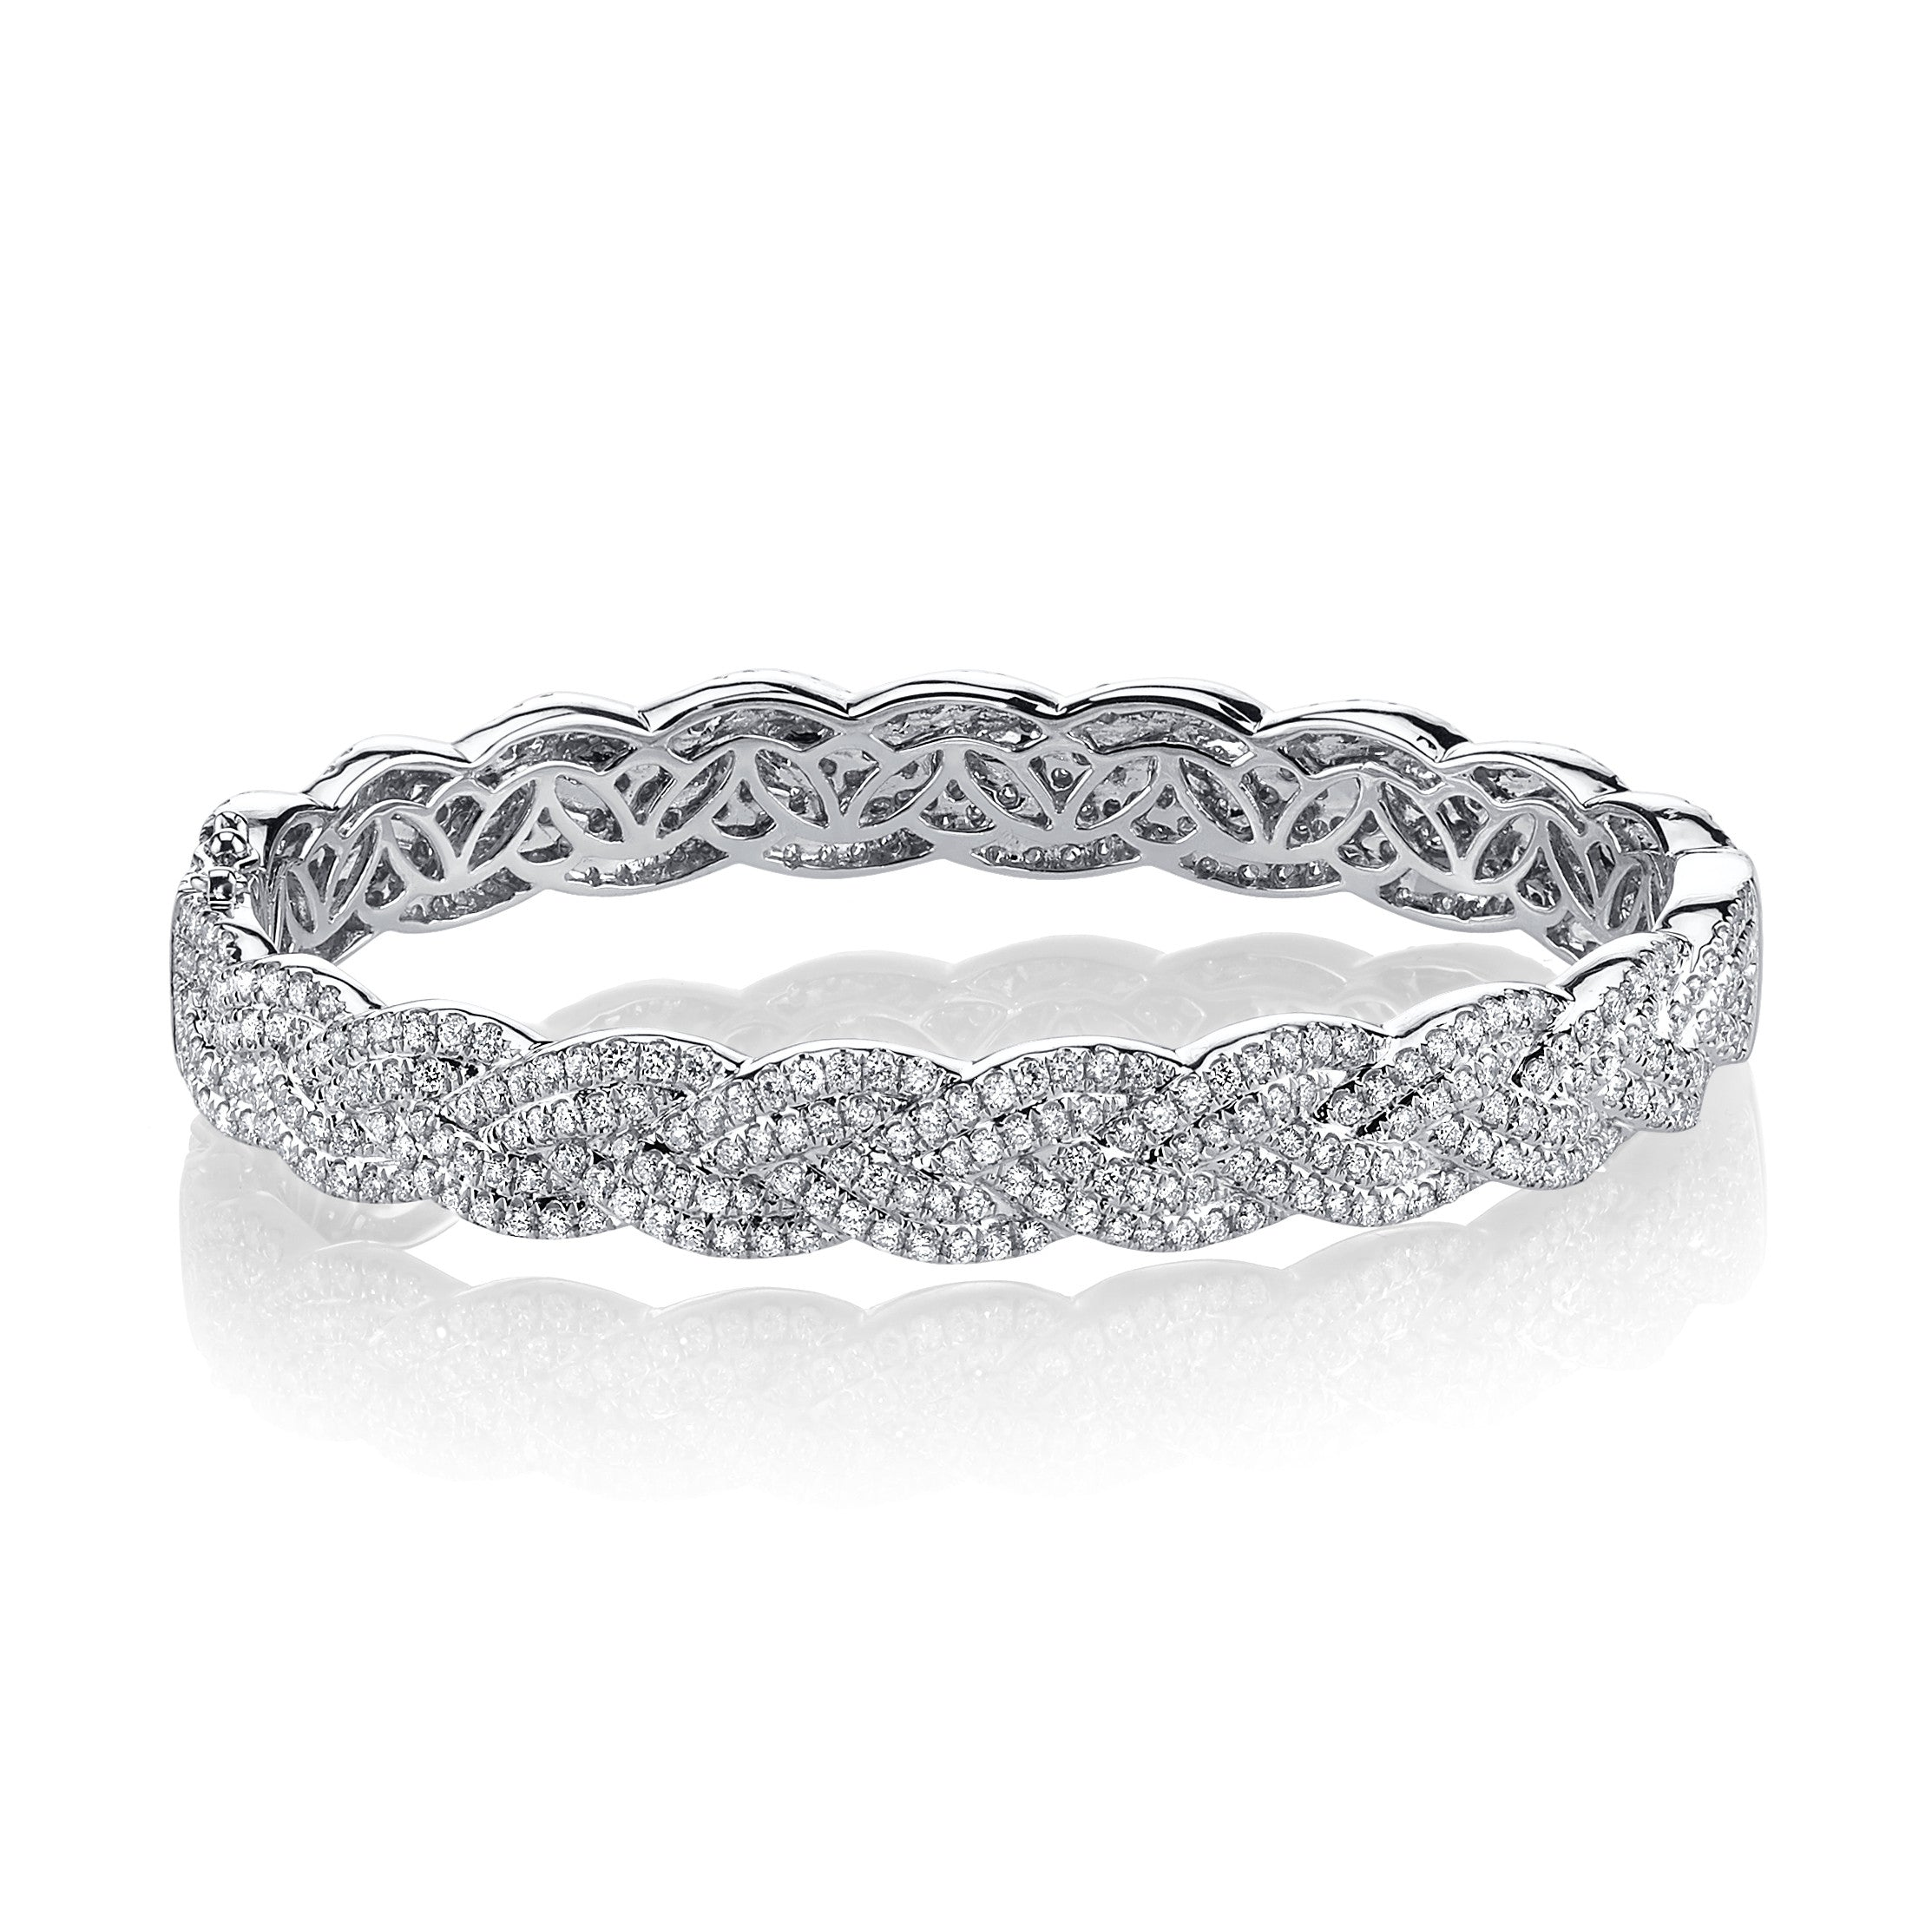 bangles bobby schandra pave by diamonds cuff silver page diamond bangle chandi collections bracelets with cz